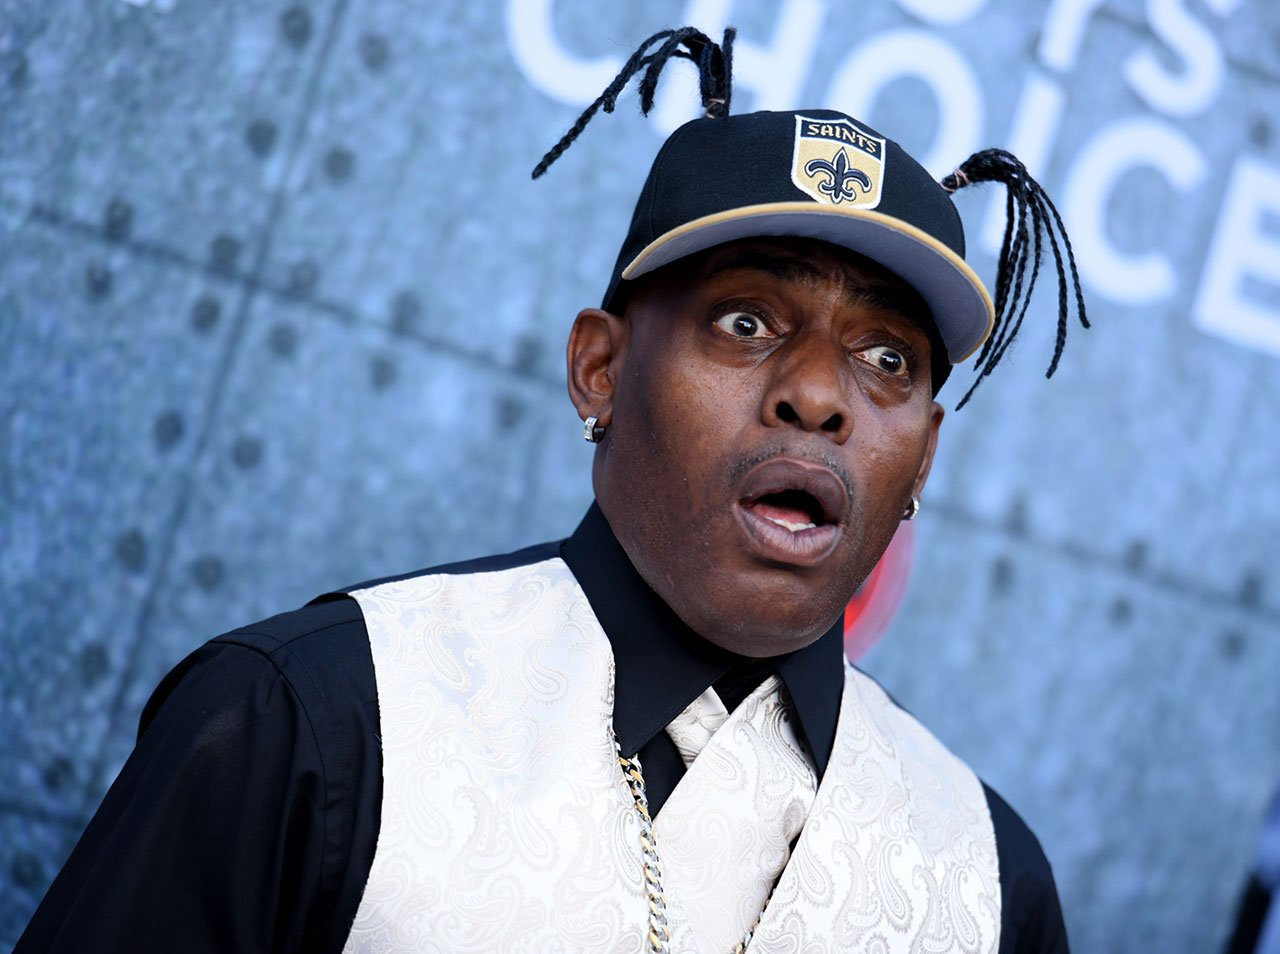 Coolio attends the 2015 Spike TV's Guys Choice Awards at Sony Studios in Culver City, Calif. (Photo by Richard Shotwell/Invision/AP, File)